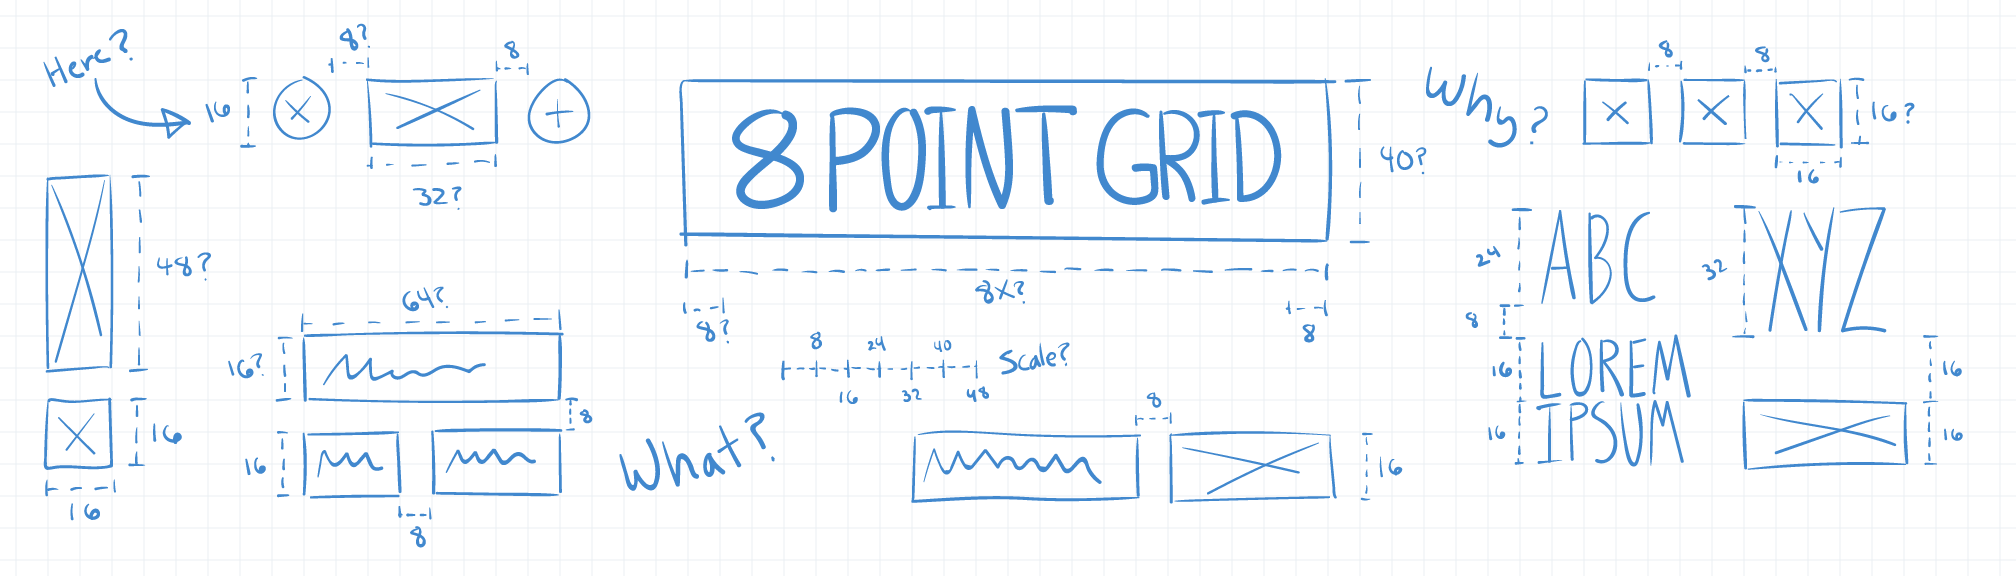 Intro to The 8-Point Grid System - Built to Adapt